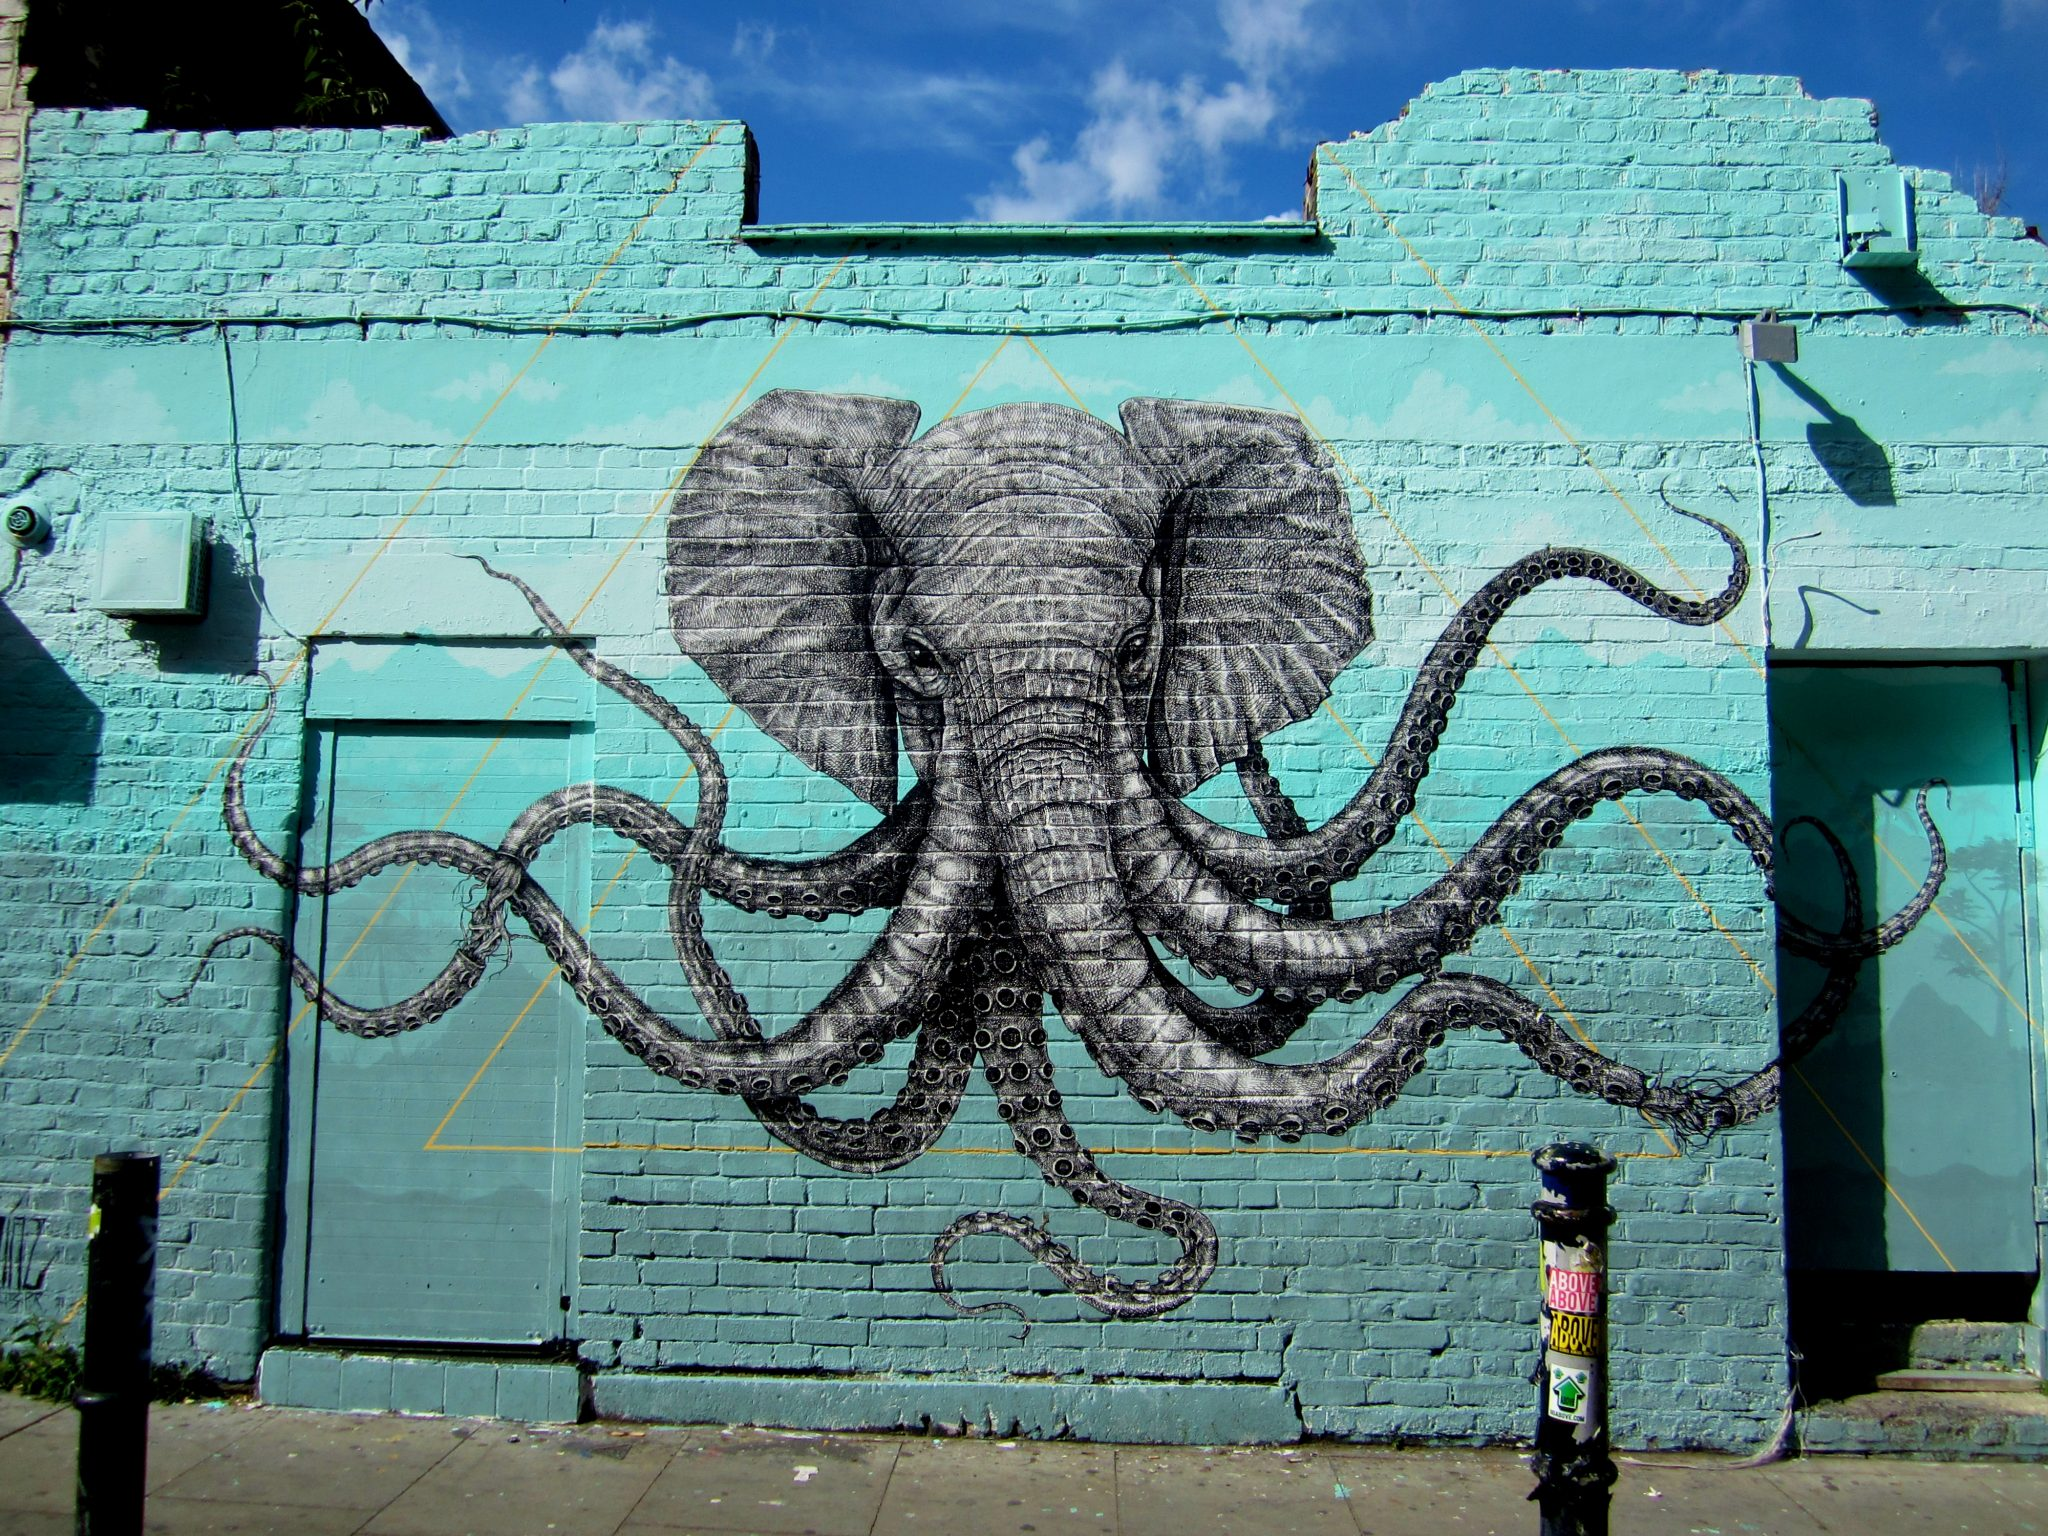 Arte callejero animal